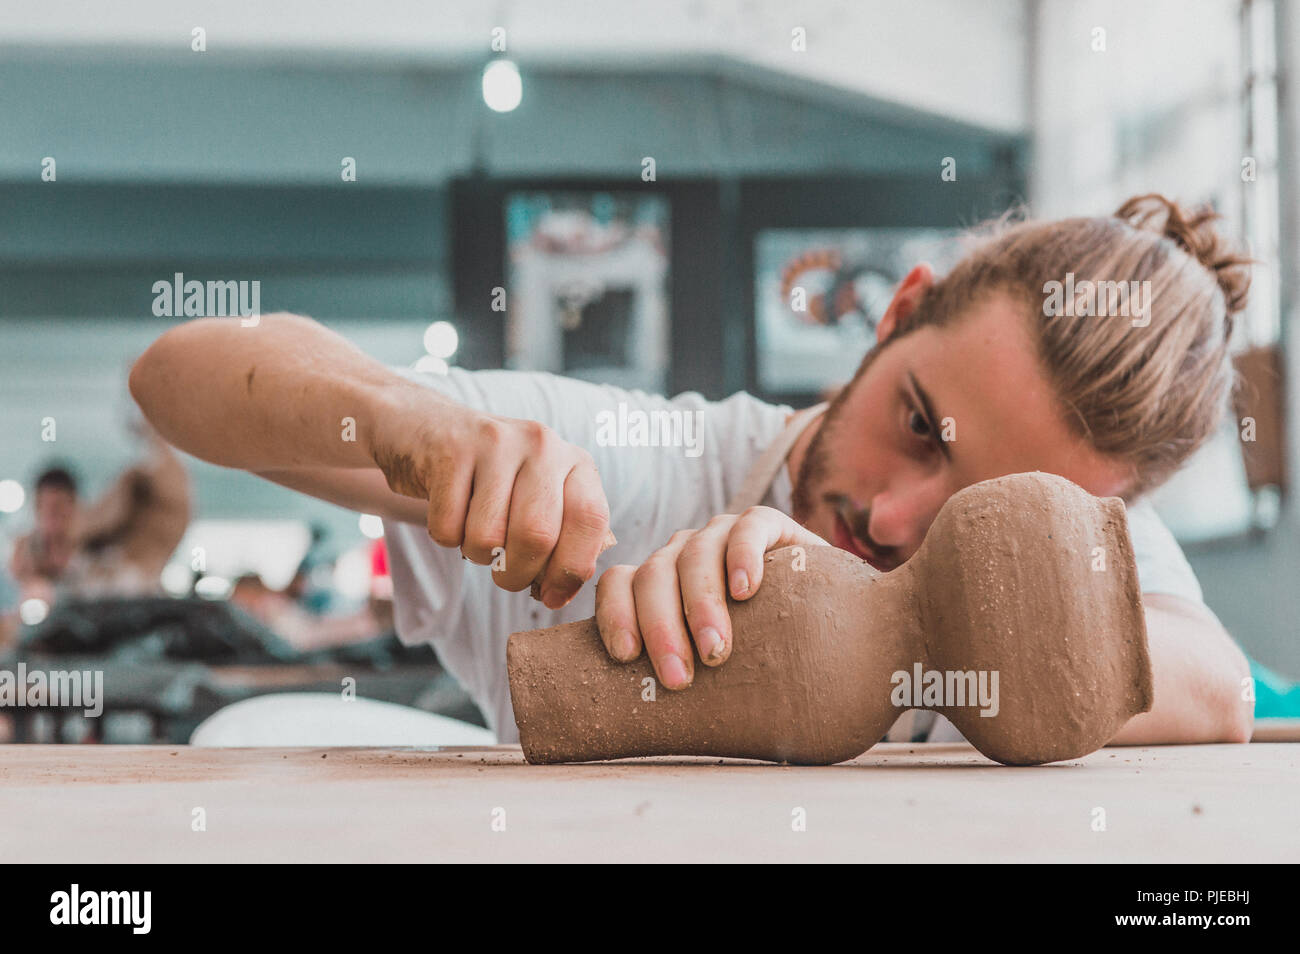 Young pottery artist working on his clay pot in an atelier - Stock Image